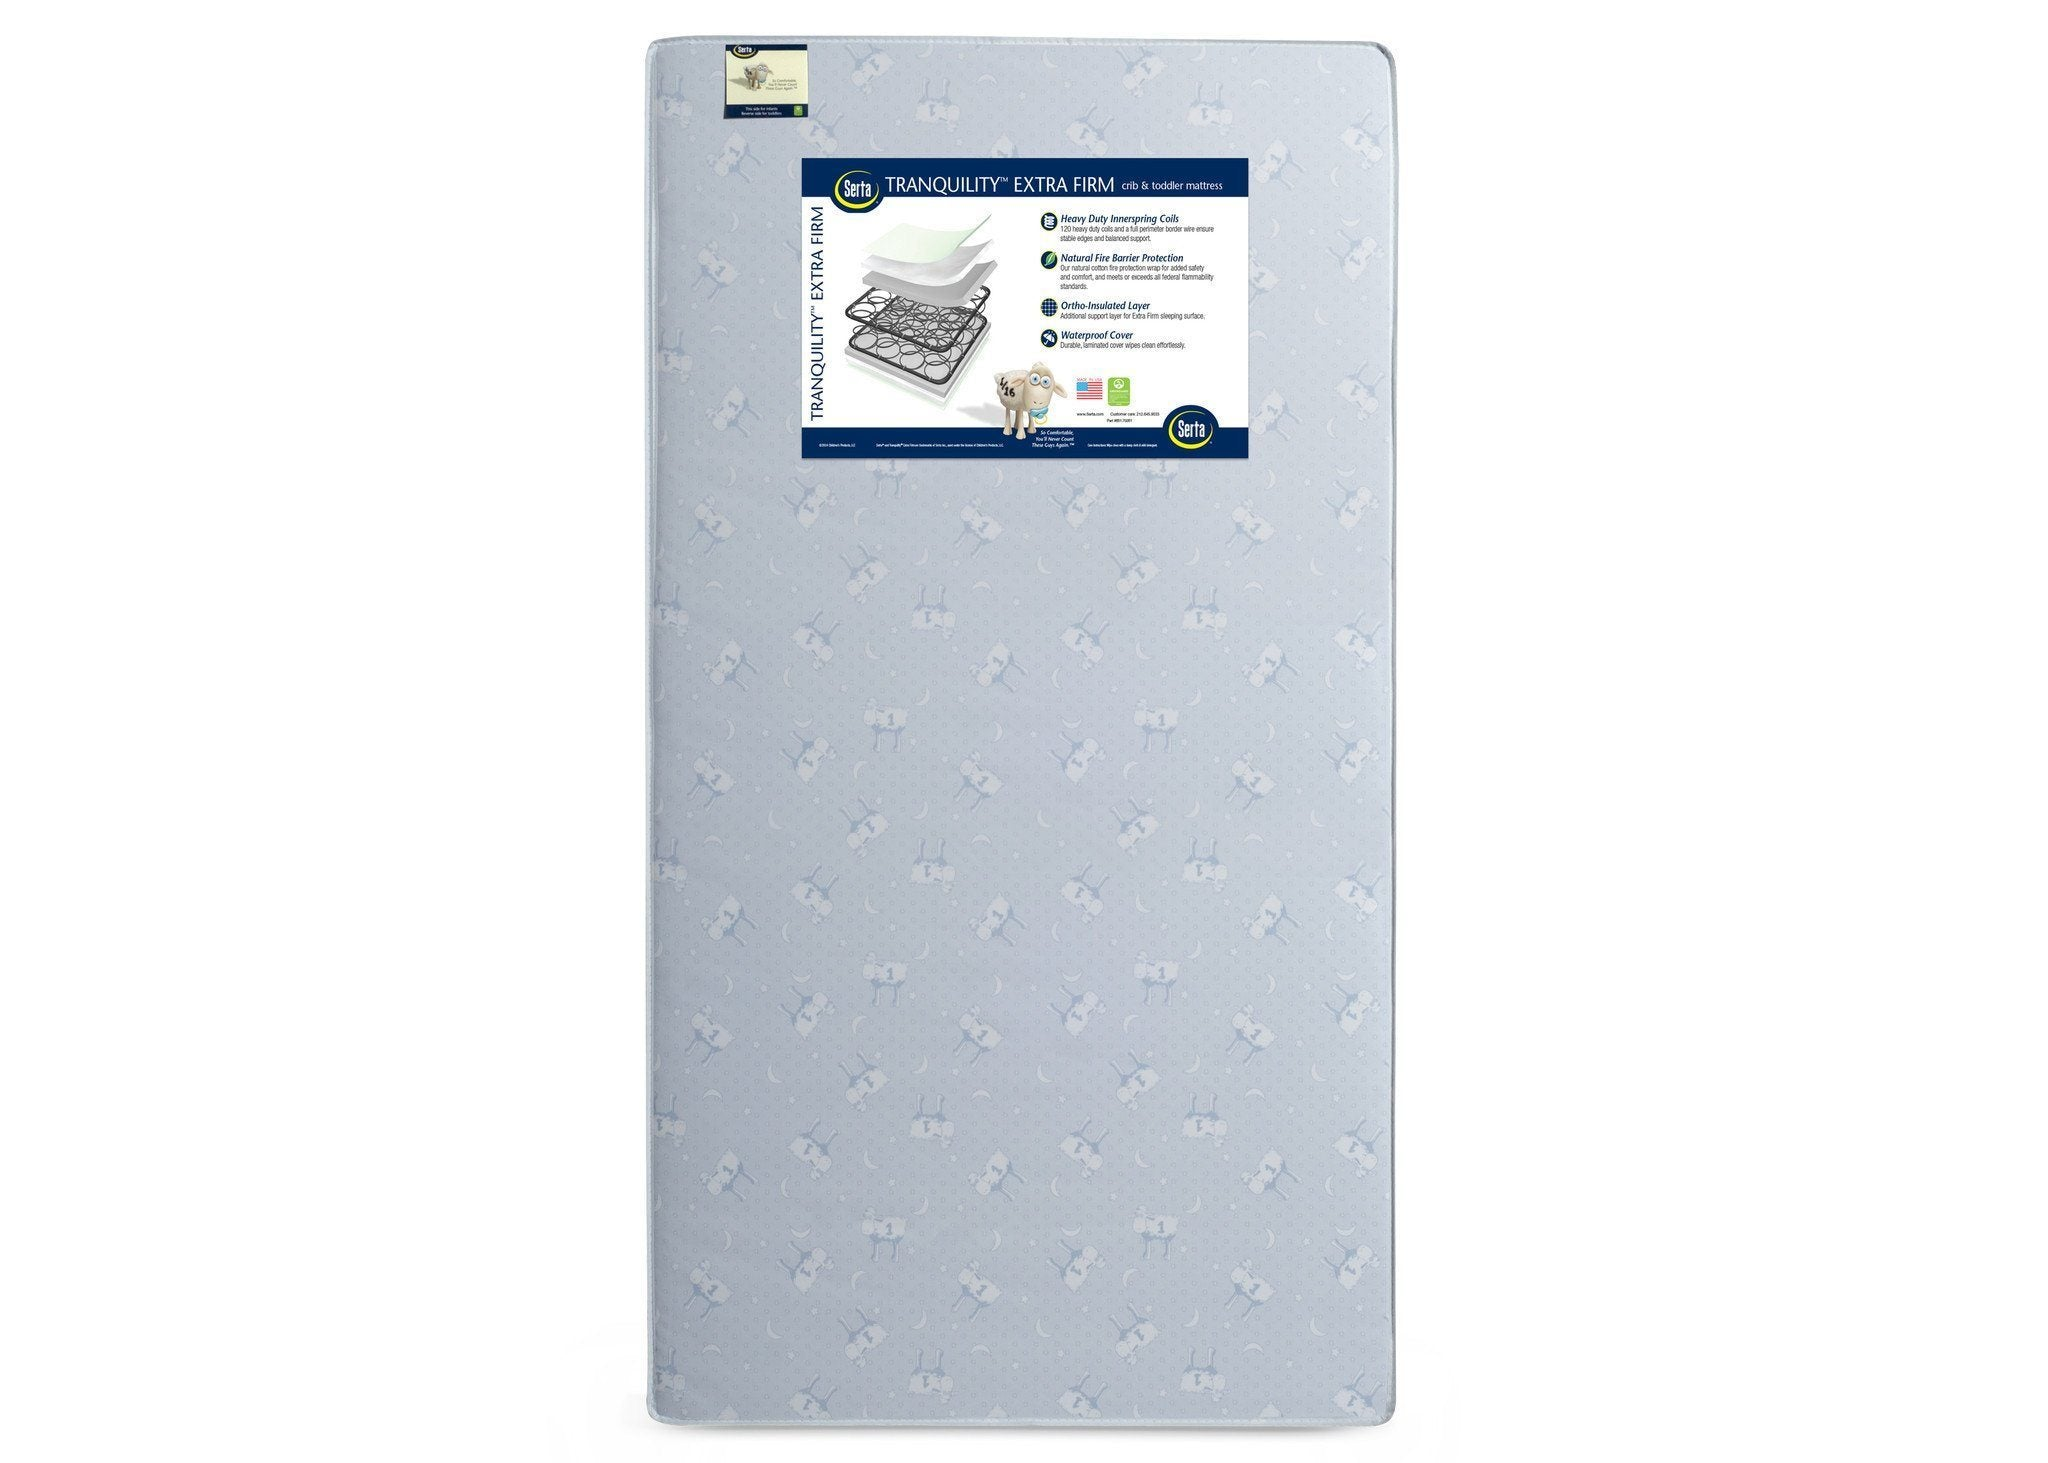 Serta Tranquility Extra Firm Crib & Toddler Mattress Front View a3a No Color (NO)